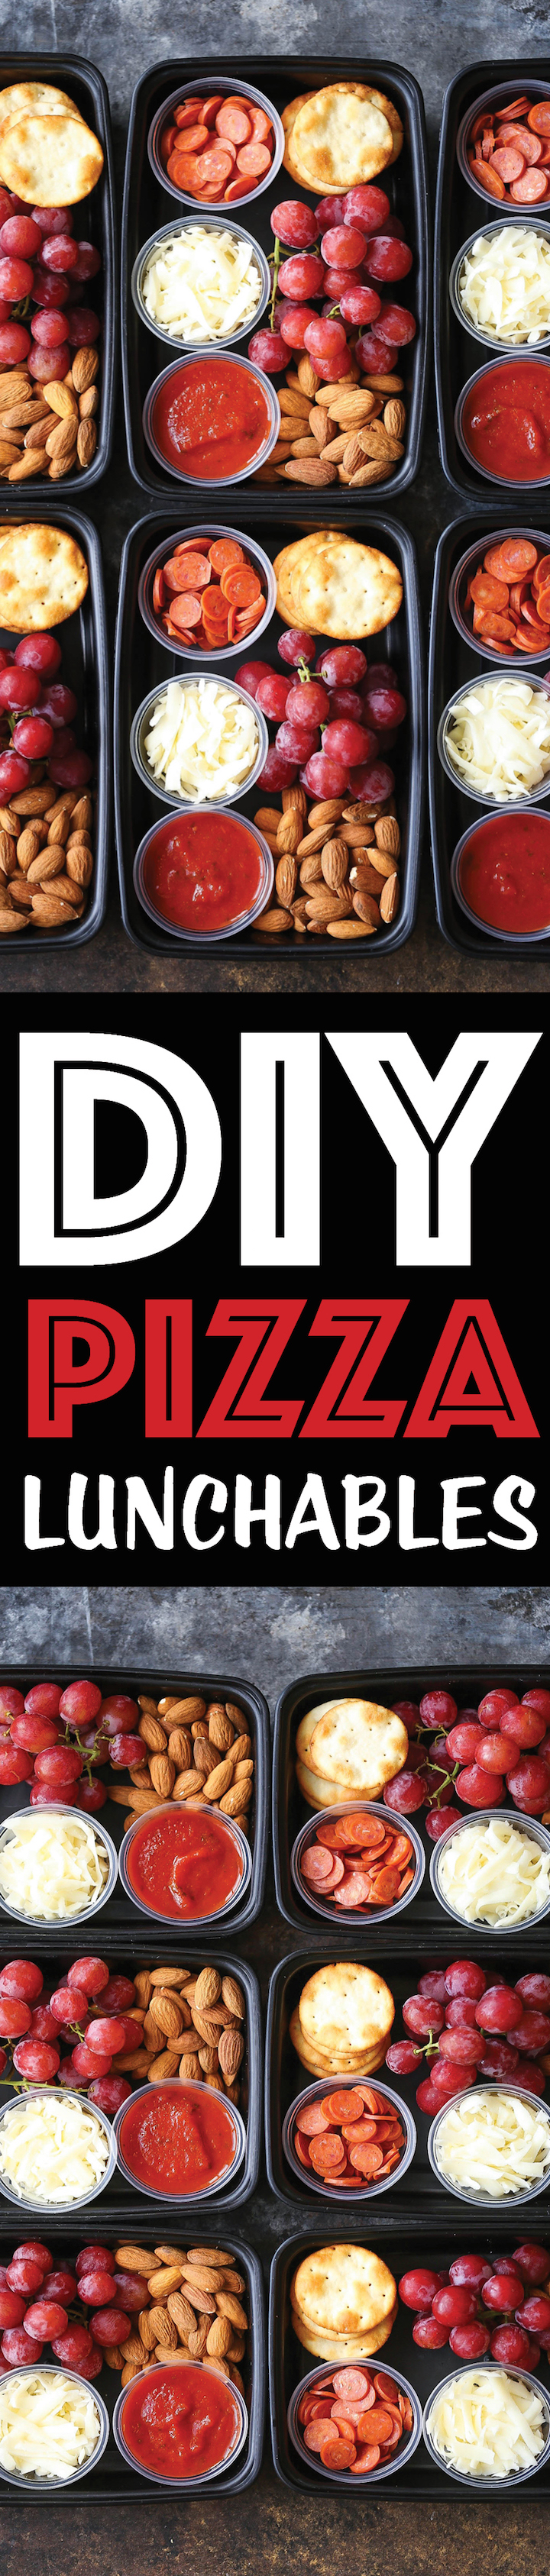 DIY Pizza Lunchables - This is so much better (and healthier) than the store-bought kind! Prep/make ahead of time too in 10-15 min! Only 257 calories.